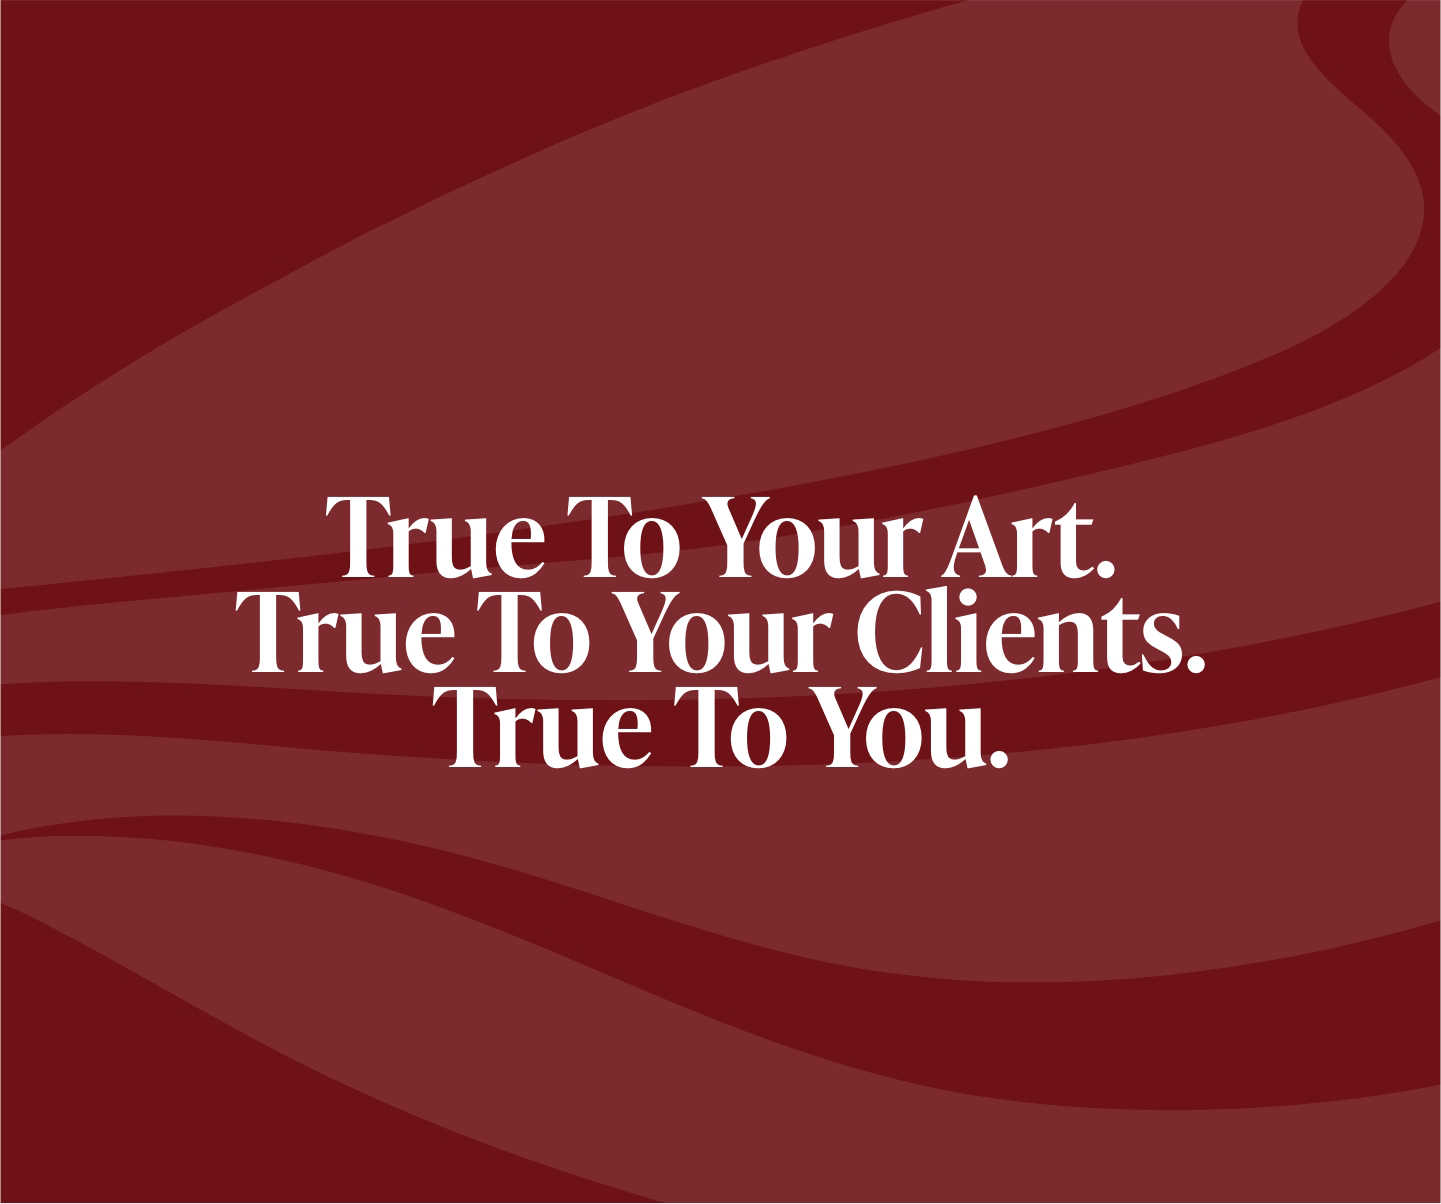 True to your art. True to your clients. True to you.